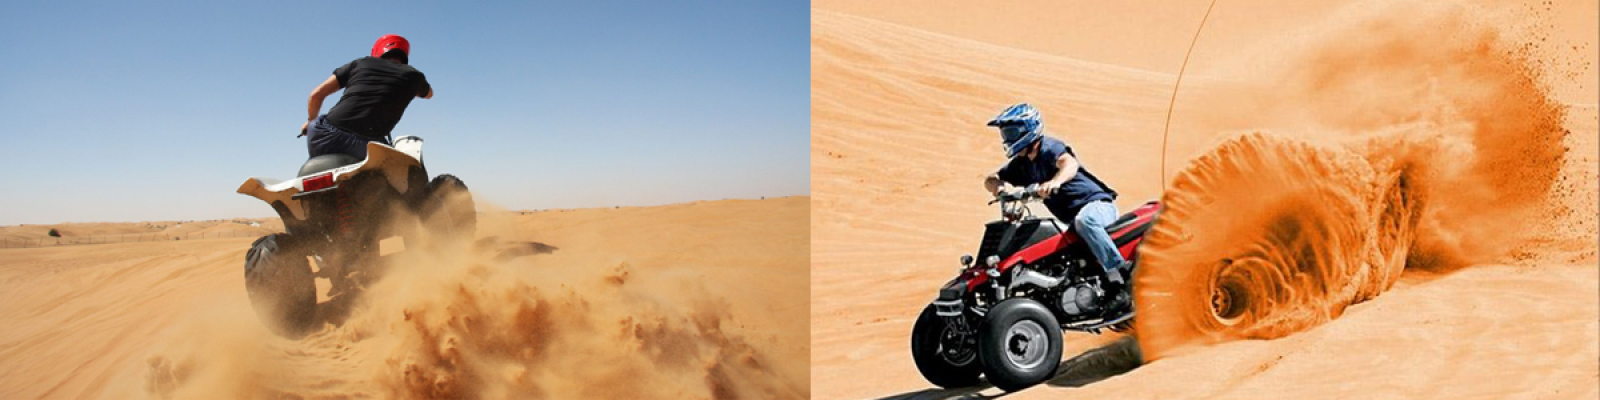 desert safari with quad bike, morning desert safari with quad bike, desert safari quad biking price